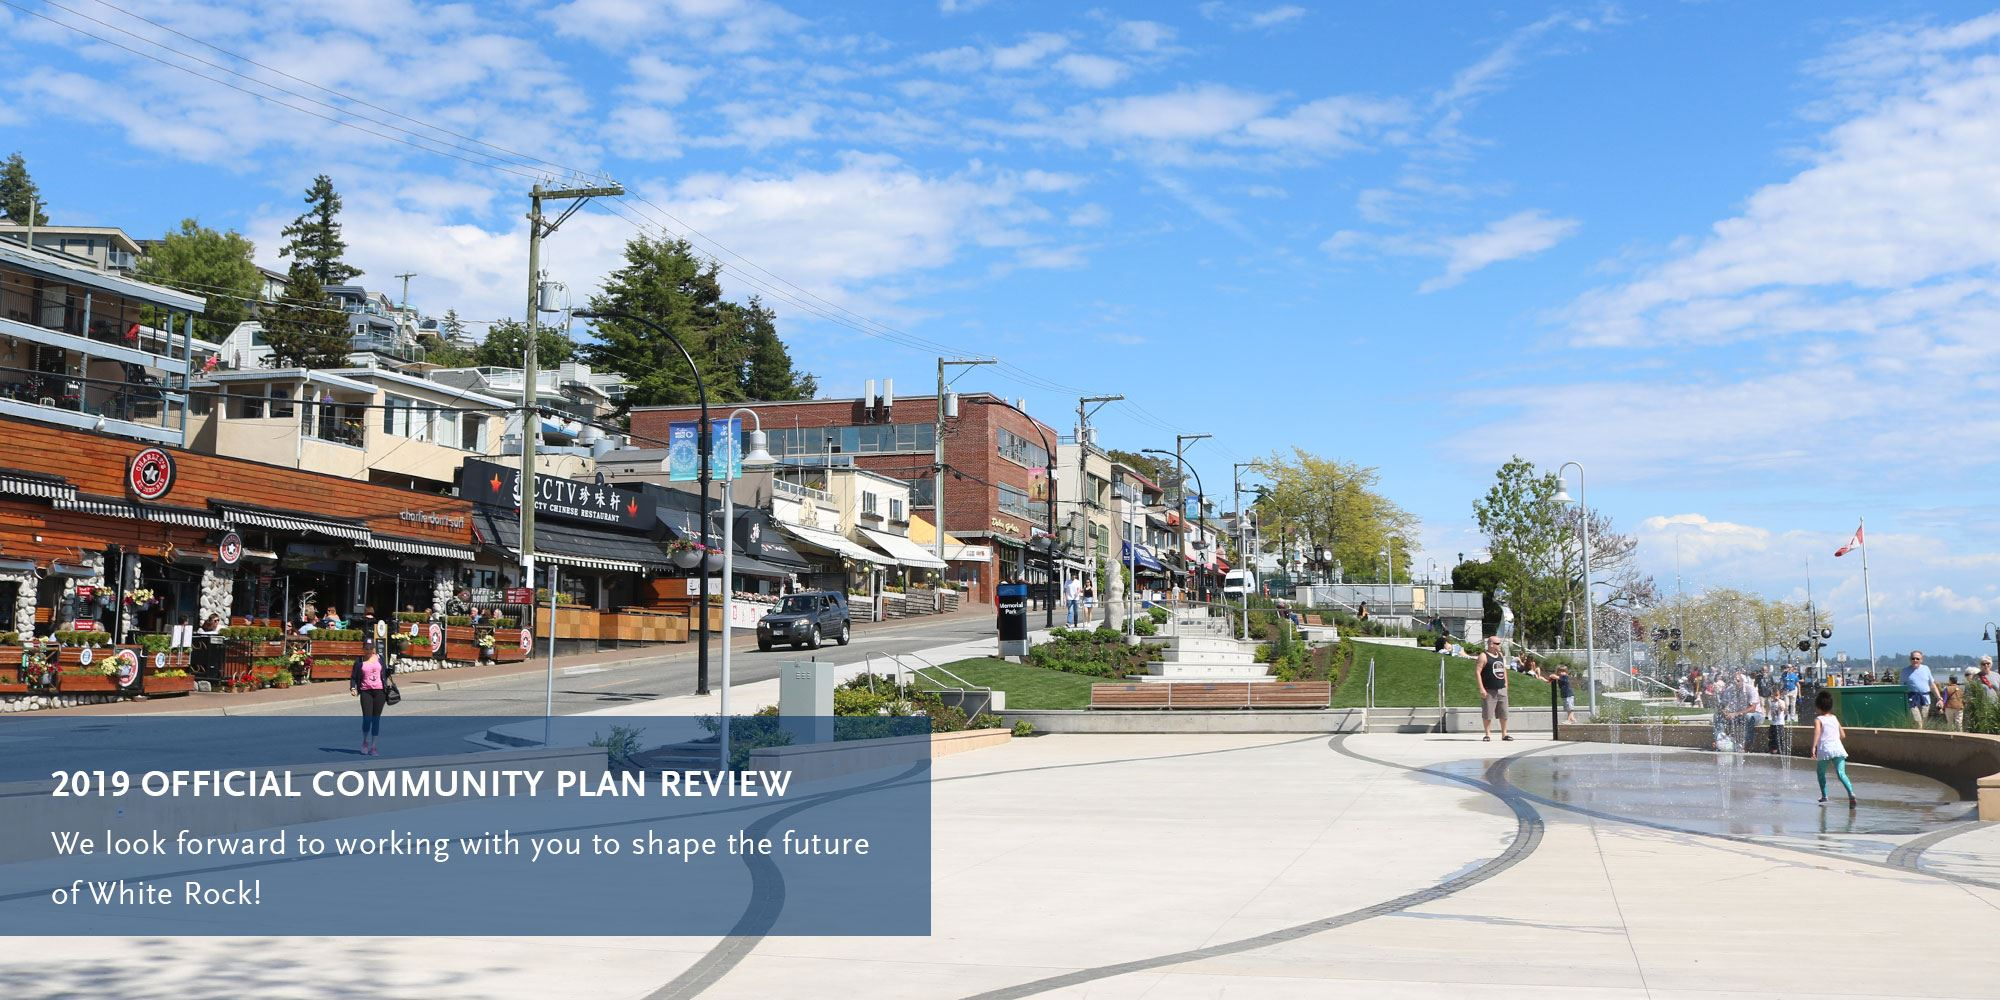 2019 Official Community Plan Review - Marine Drive, Memorial Park